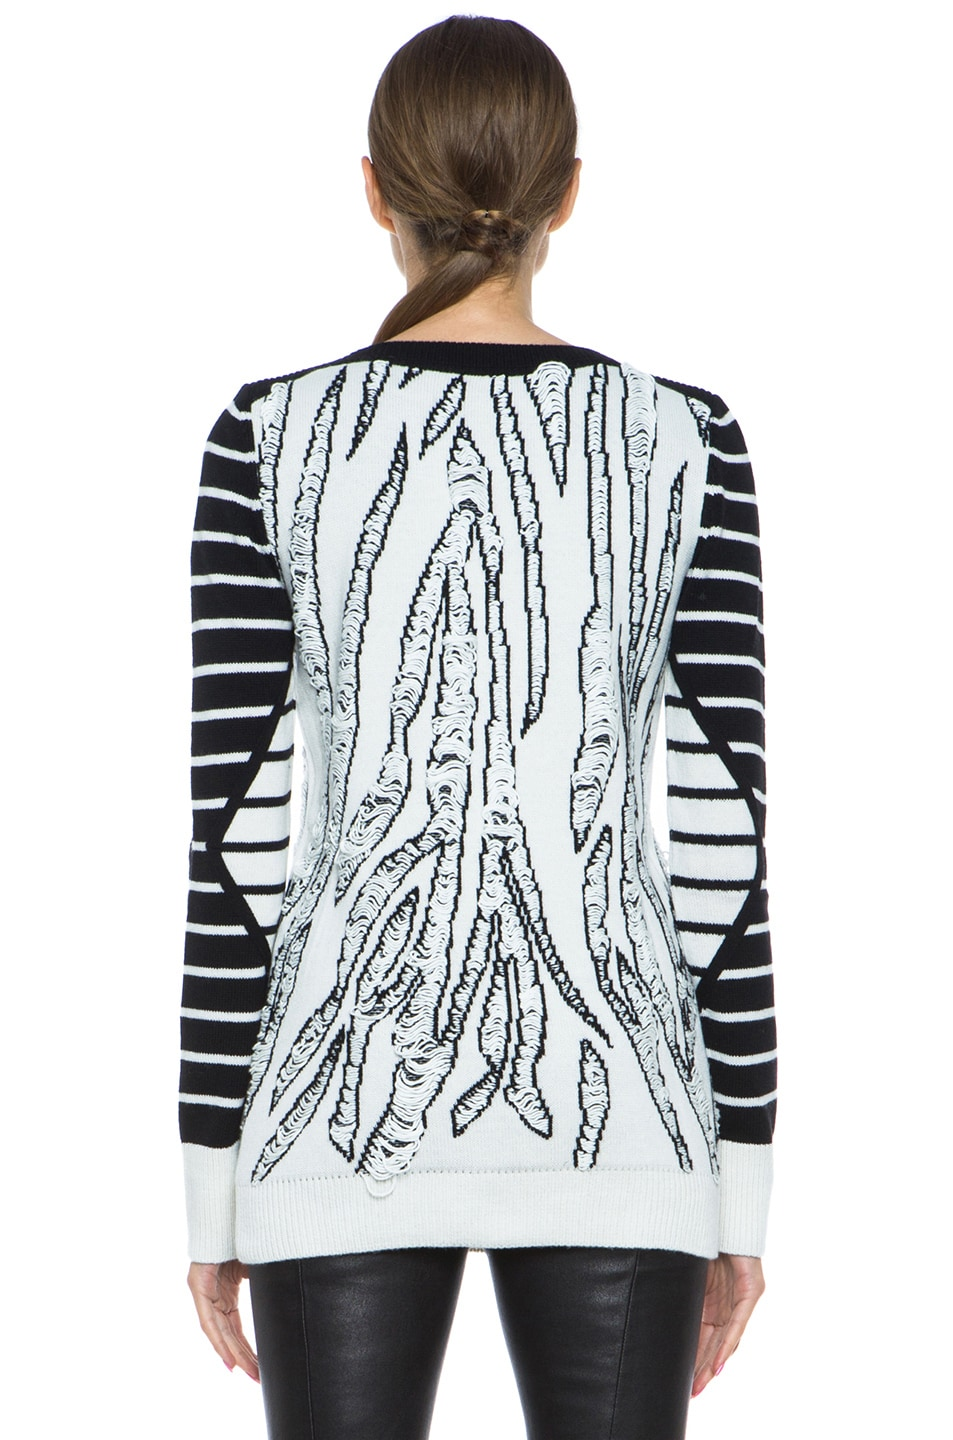 Image 4 of McQ Alexander McQueen Tiger Jacquard Float Stitch Sweater in Cream & Black